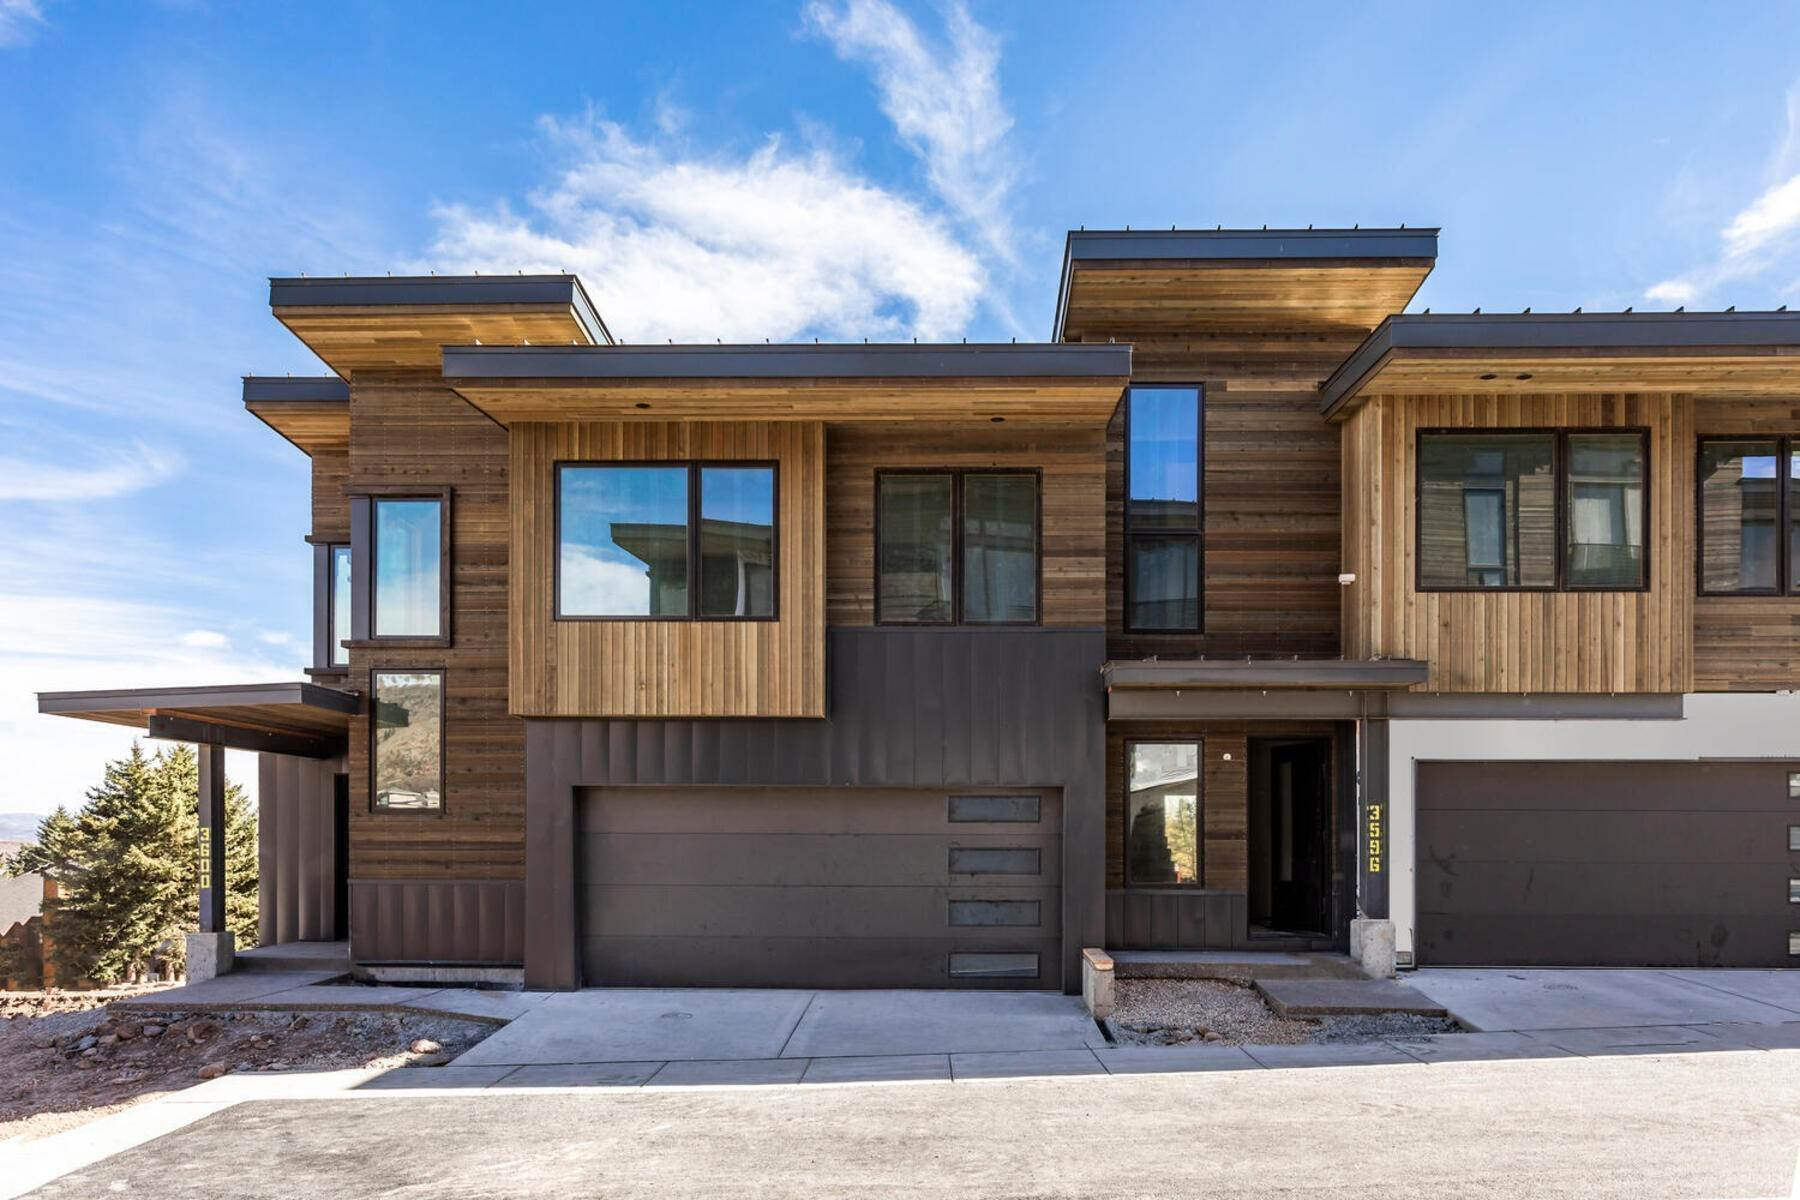 townhouses for Sale at Ski-In Town Homes in Canyons Village 3472 Ridgeline Drive Park City, Utah 84098 United States